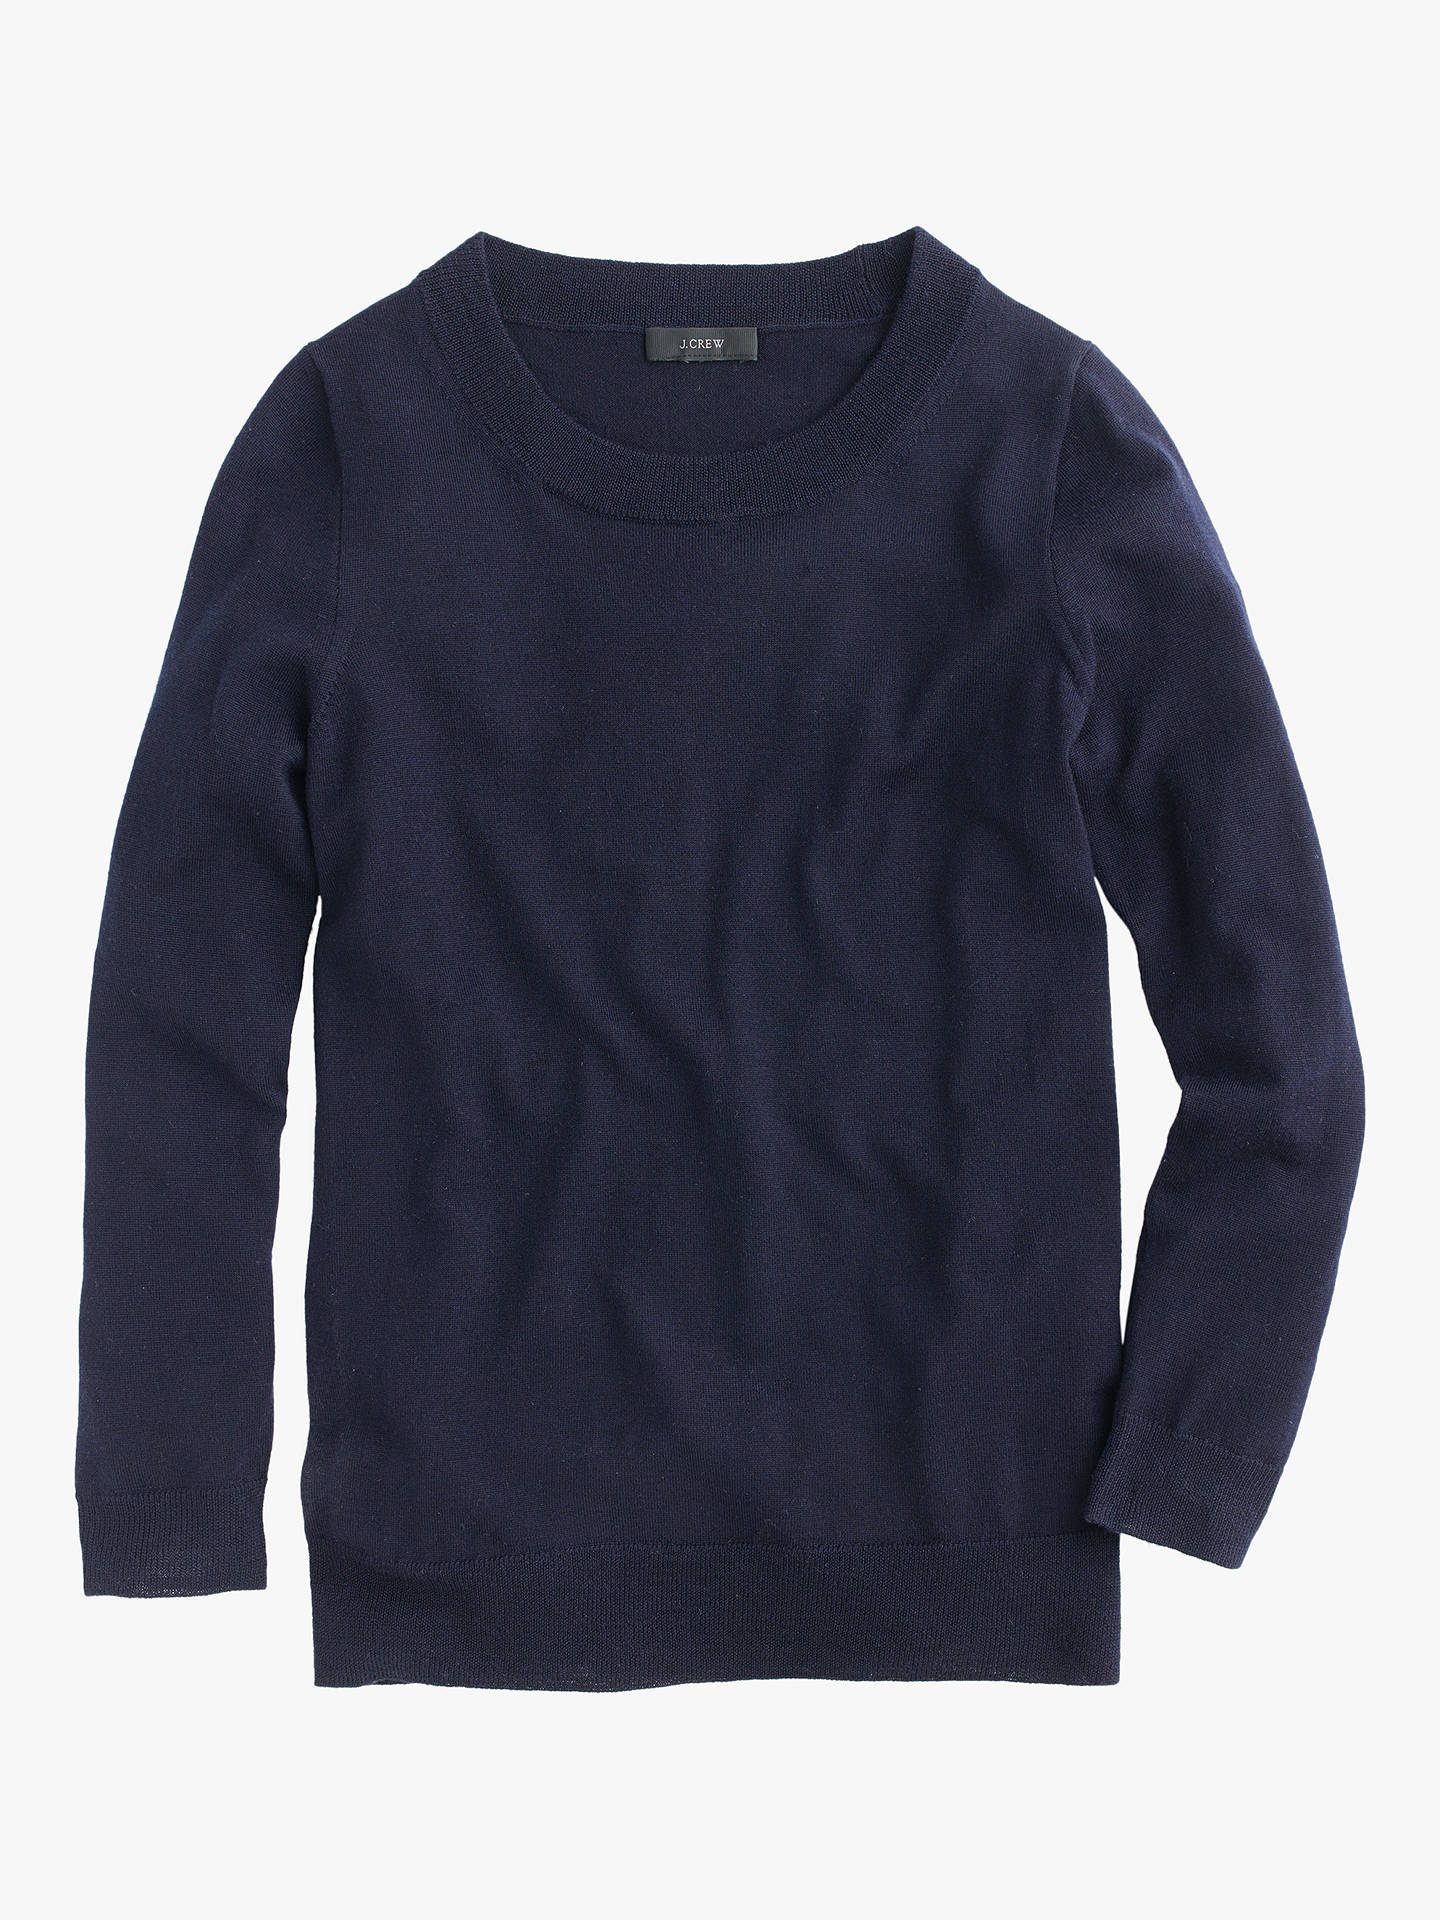 Buy J.Crew Tippi Merino Wool Jumper, Navy, XXS Online at johnlewis.com